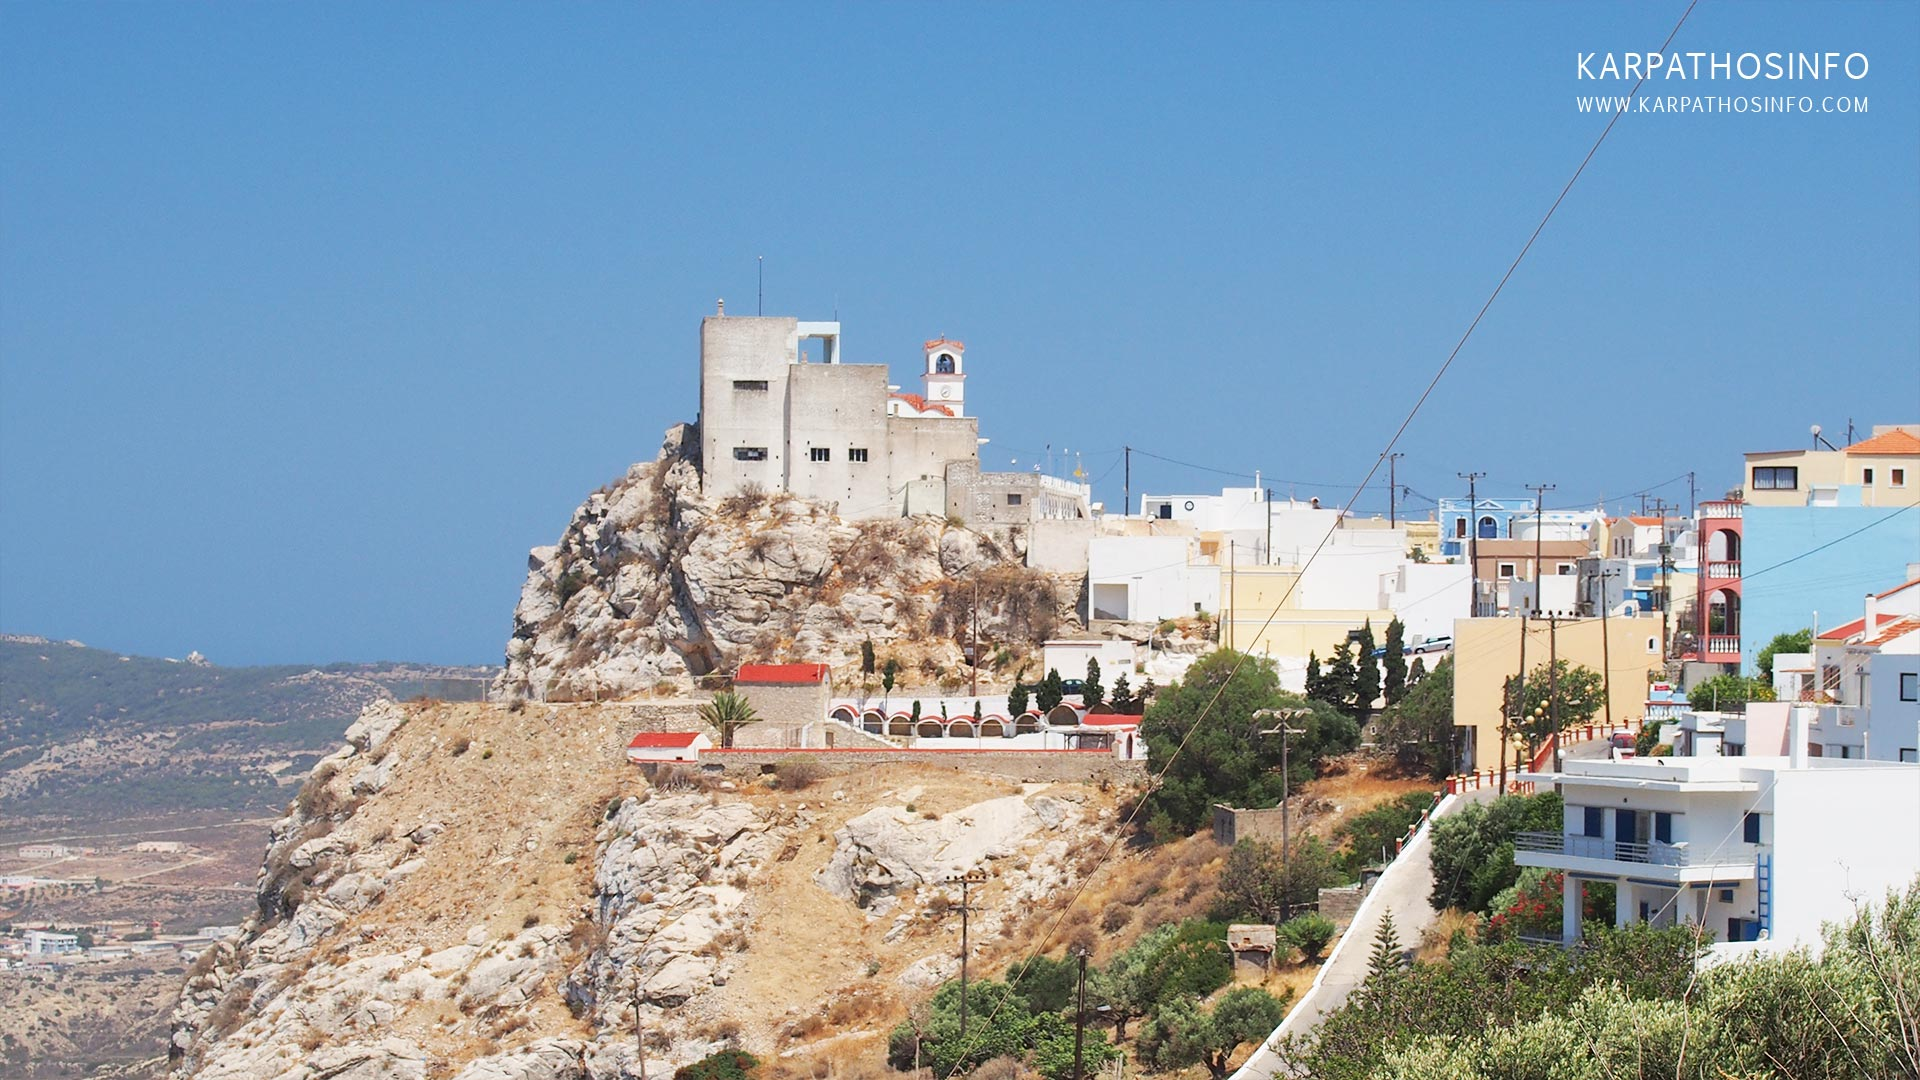 images/slider/other-museums-in-karpathos.jpg